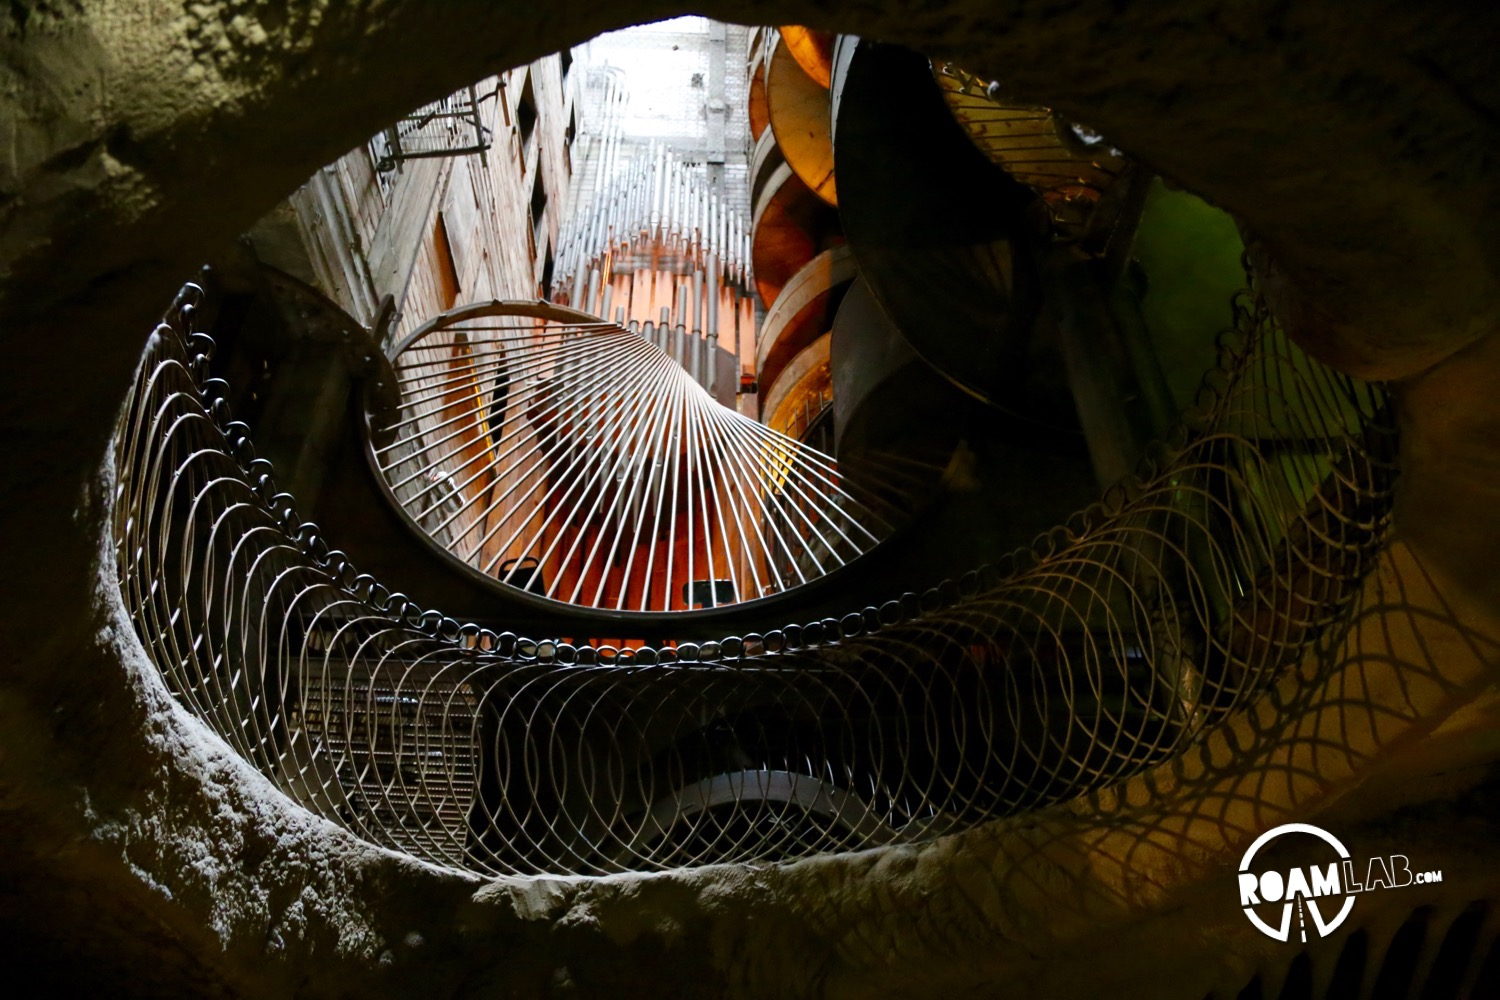 Crawling through the winding passages of the museum can be a truly surreal experience—particularly when traveling through spiraling wire mesh, unsure where, or even if, you will get out.